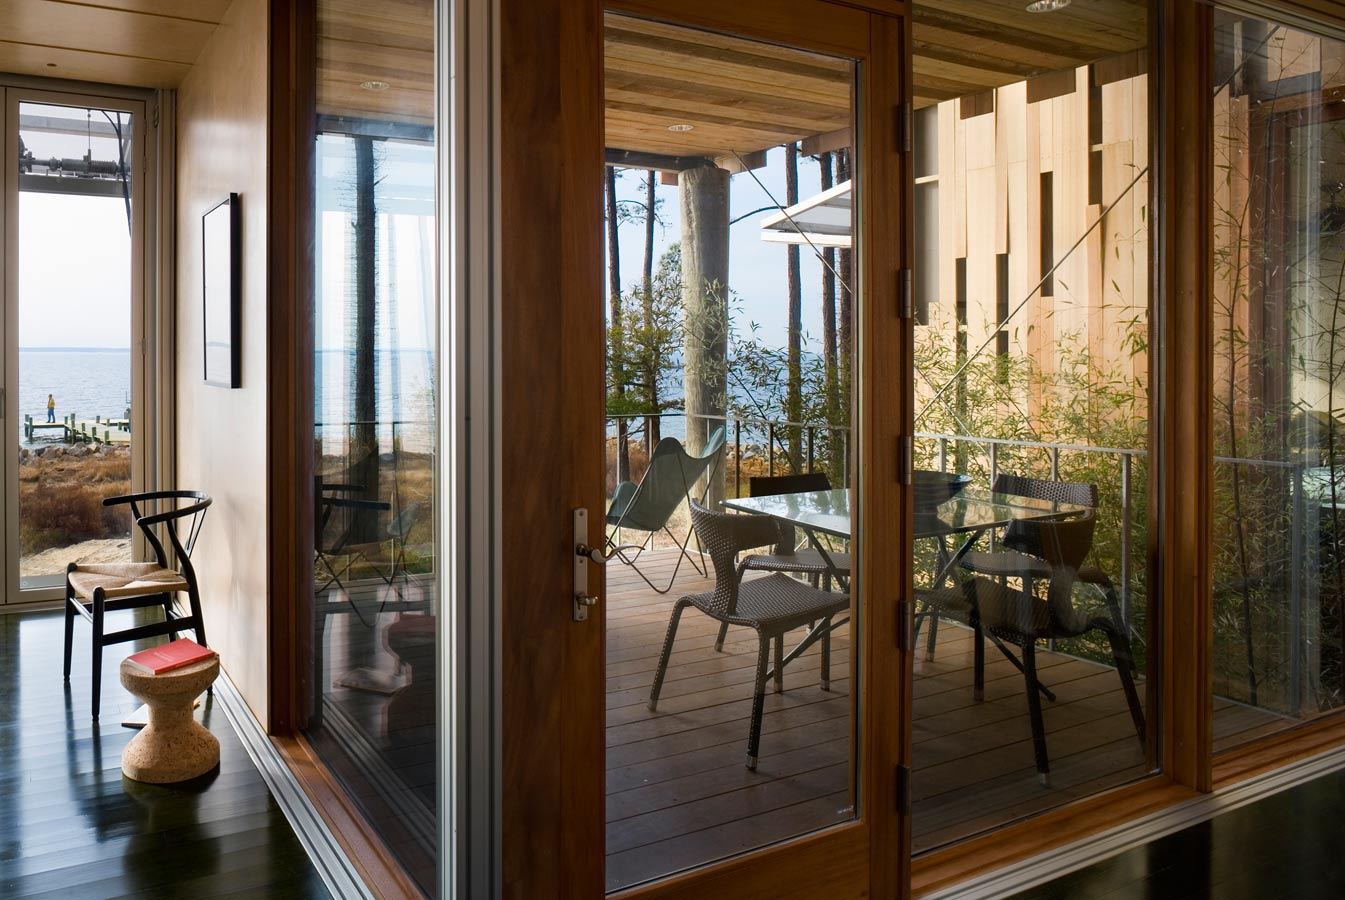 <p>The covered deck outside the master bedroom, with bamboo garden and guest wing beyond. <br><small>© Peter Aaron/OTTO</small></p>